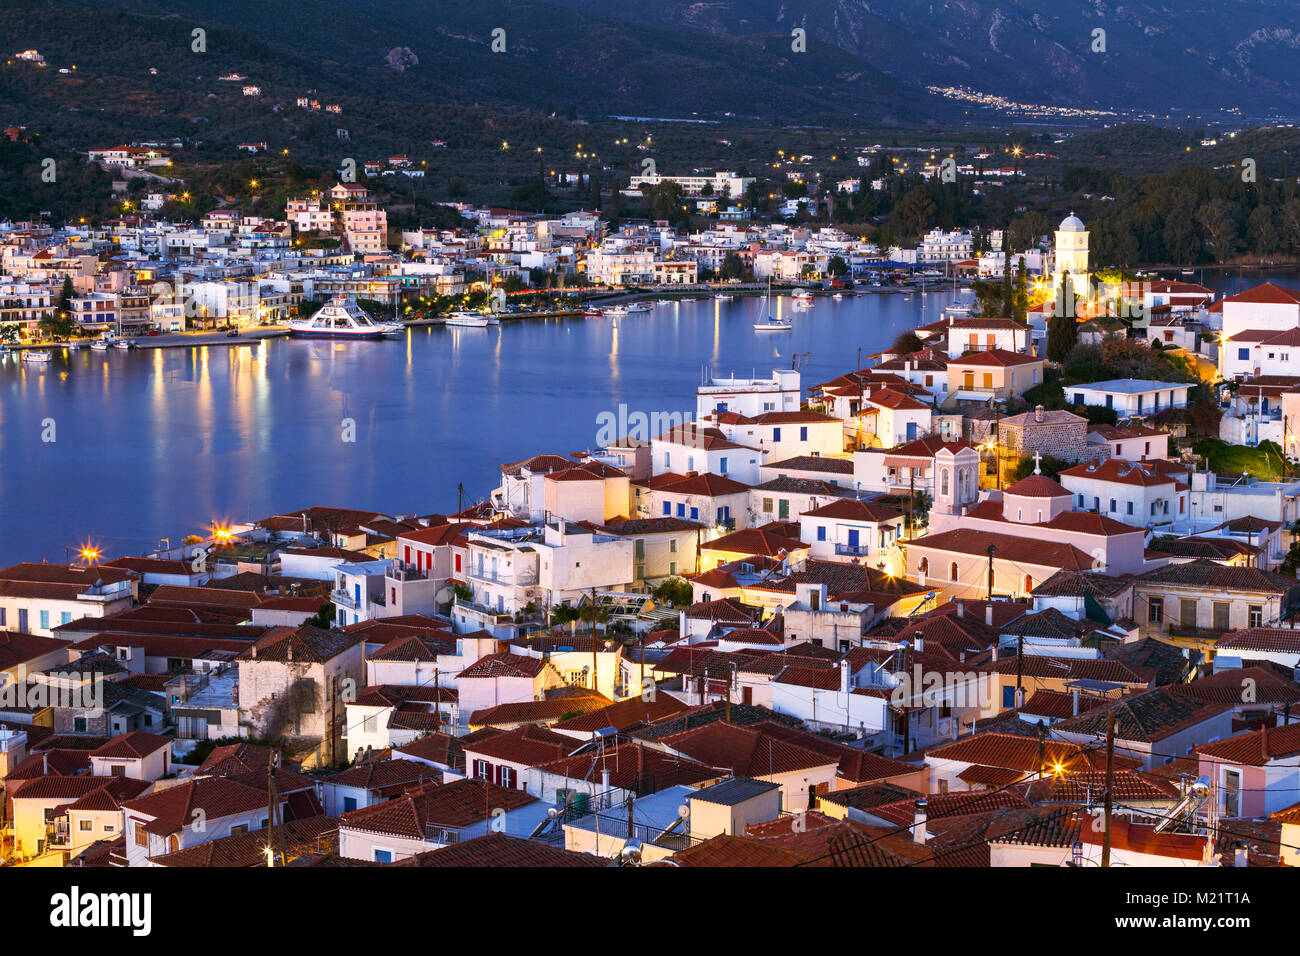 View of Poros island and Galatas village in Peloponnese peninsula in Greece. - Stock Image